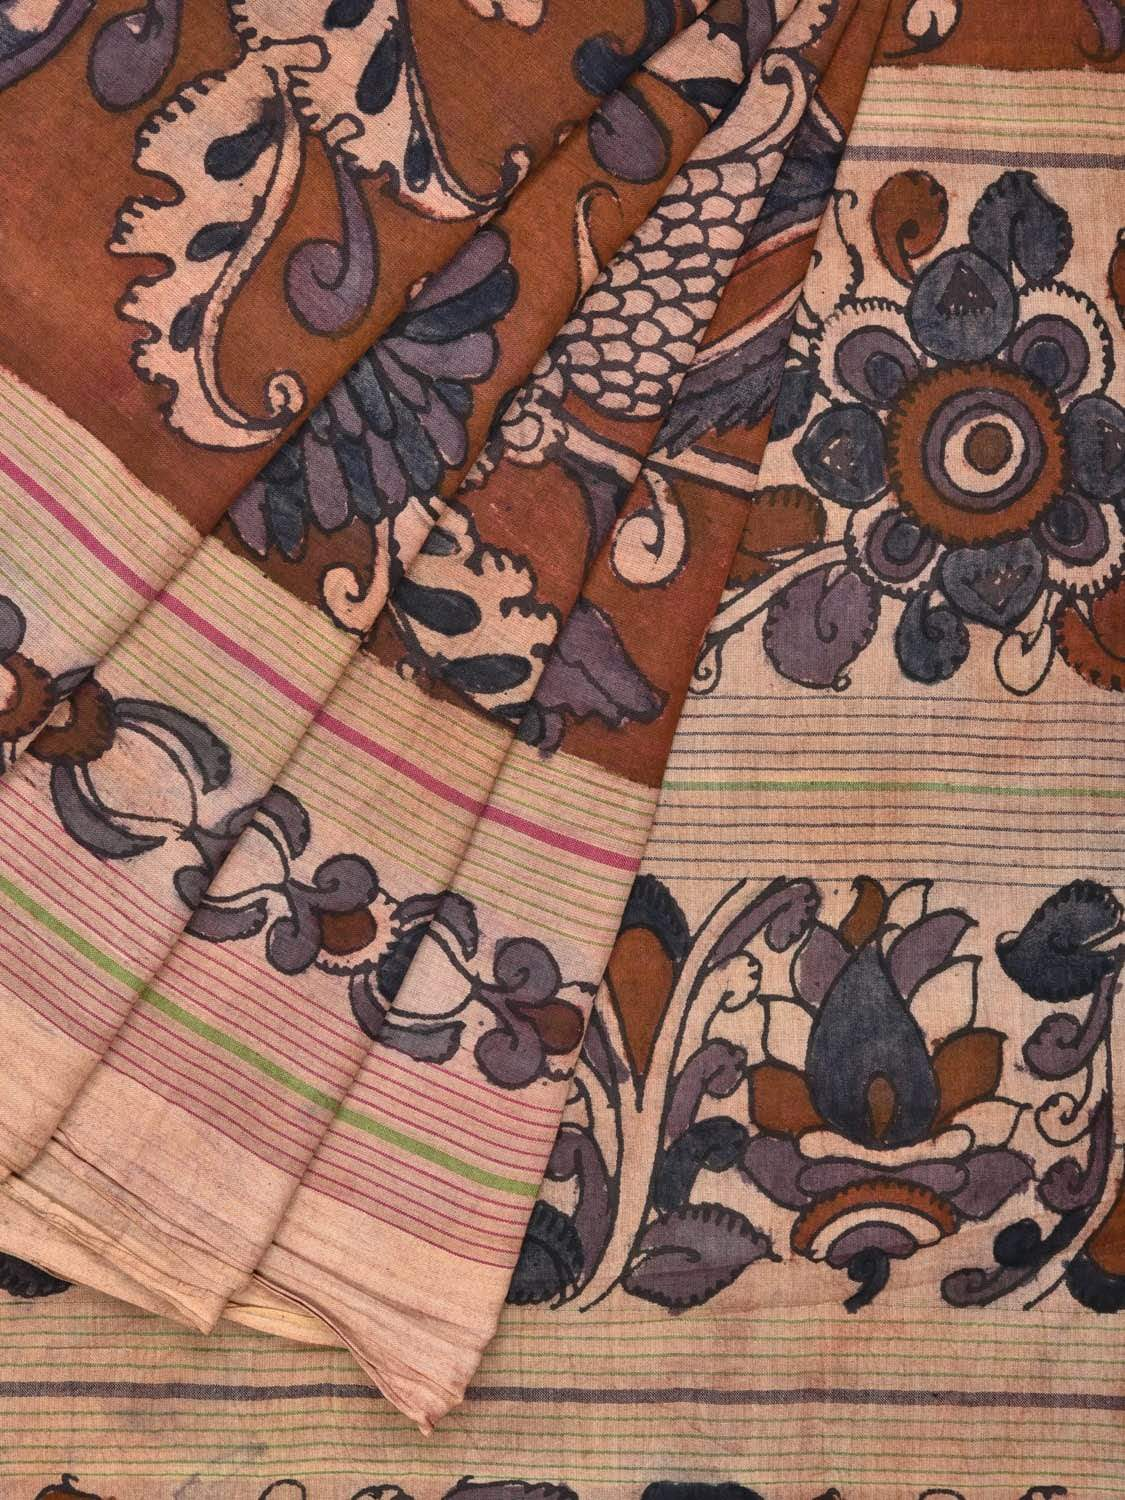 Rust Kalamkari Hand Painted Cotton Handloom Saree with Flowers and Birds Design KL0192